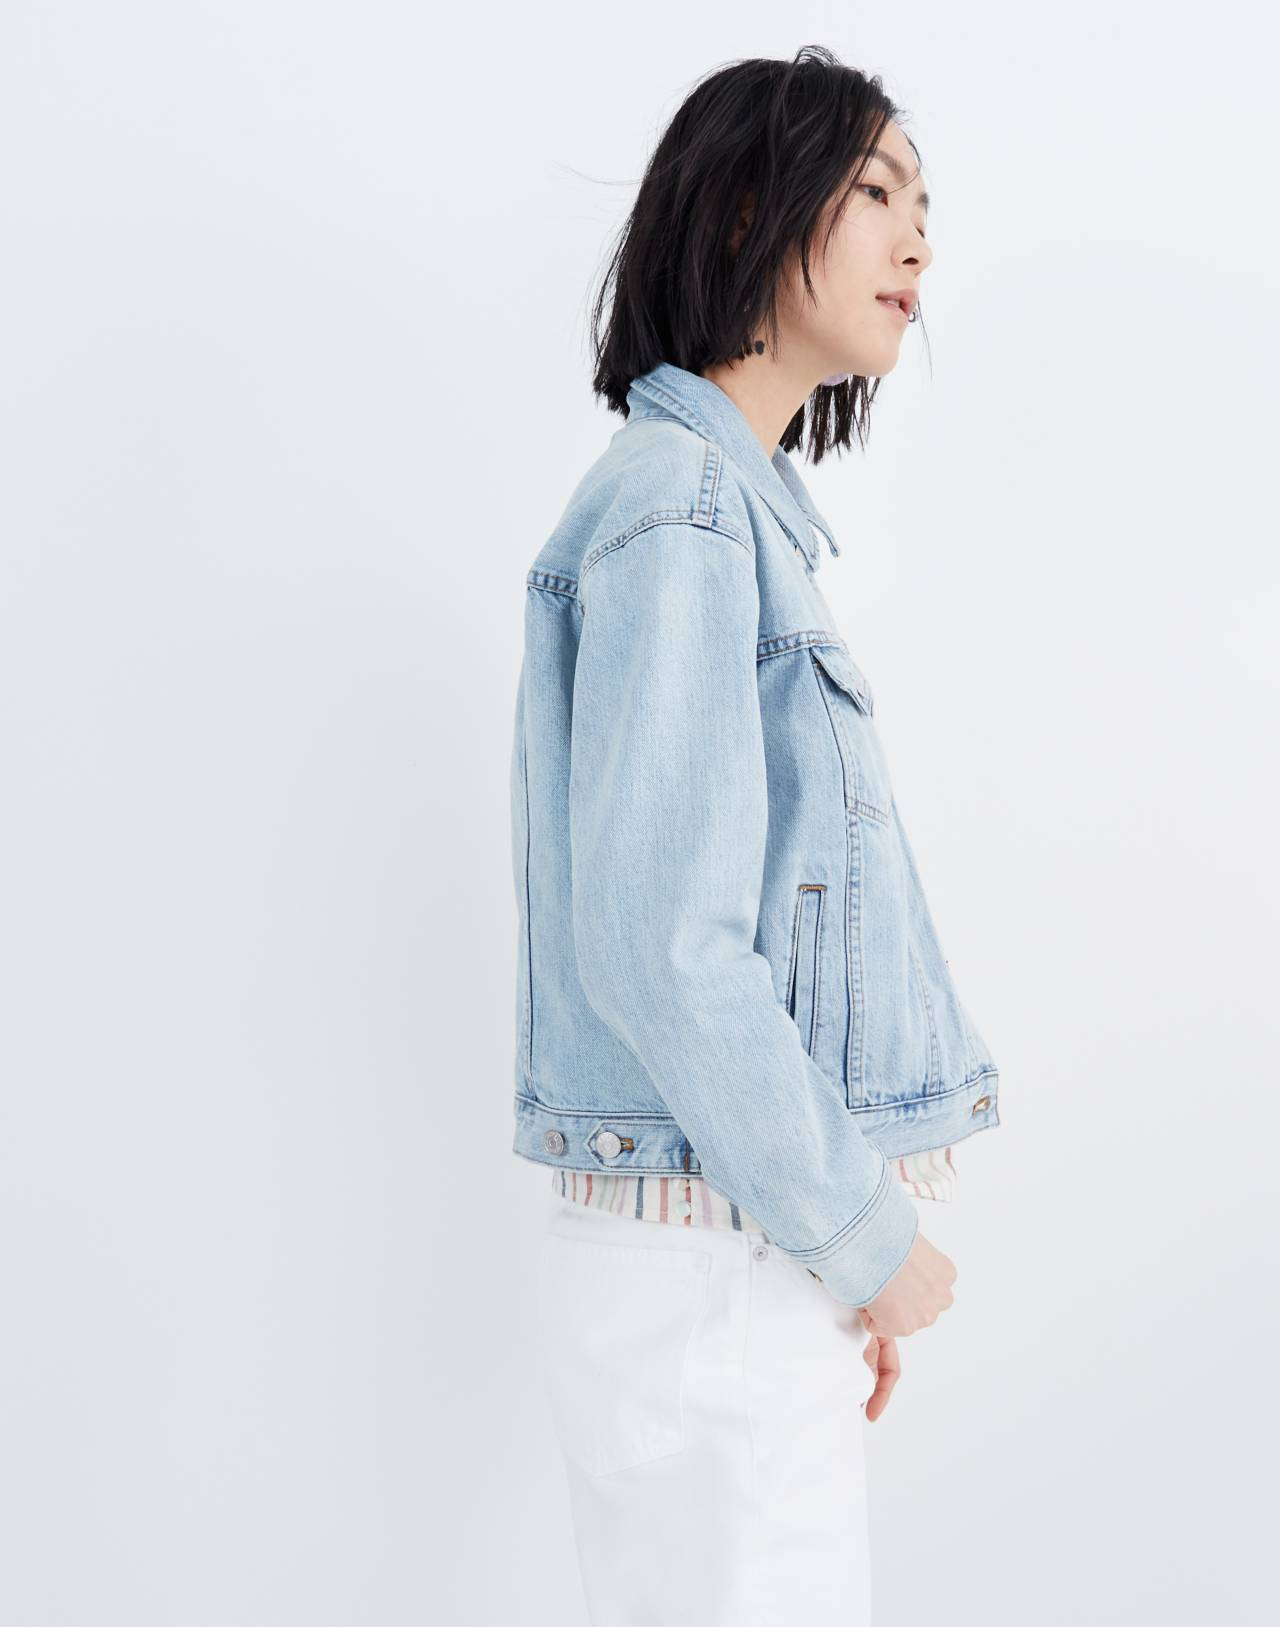 The Boxy-Crop Jean Jacket in Fitzgerald Wash in fitzgerald wash image 2